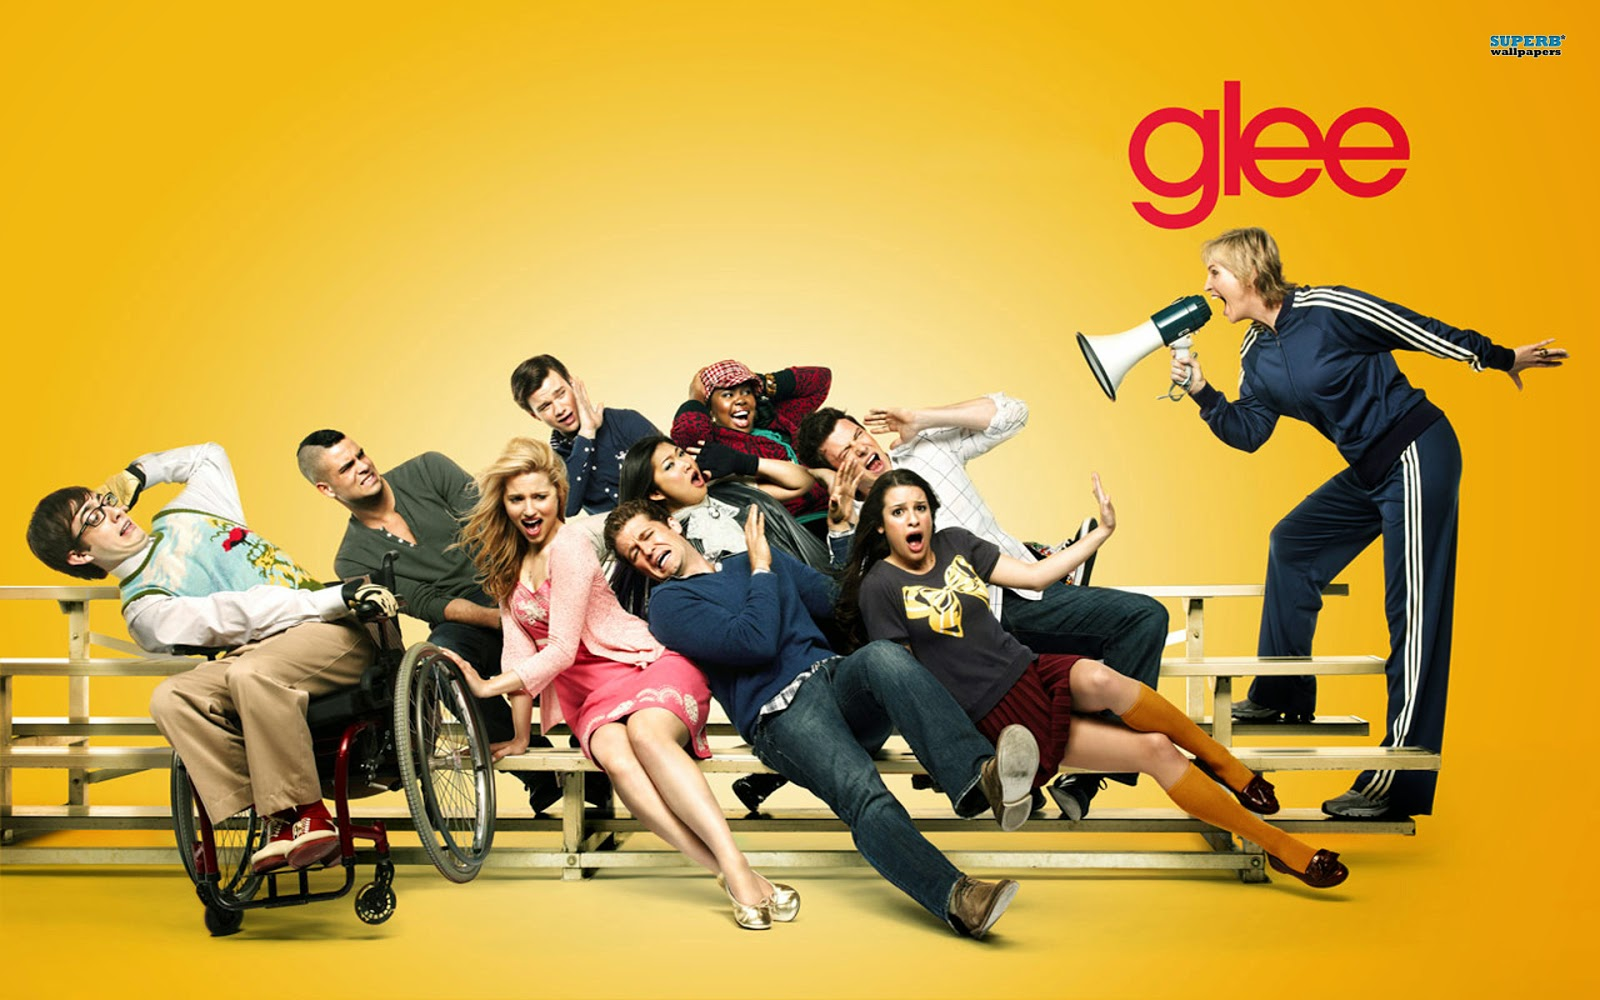 http://en.wikipedia.org/wiki/Glee_%28TV_series%29